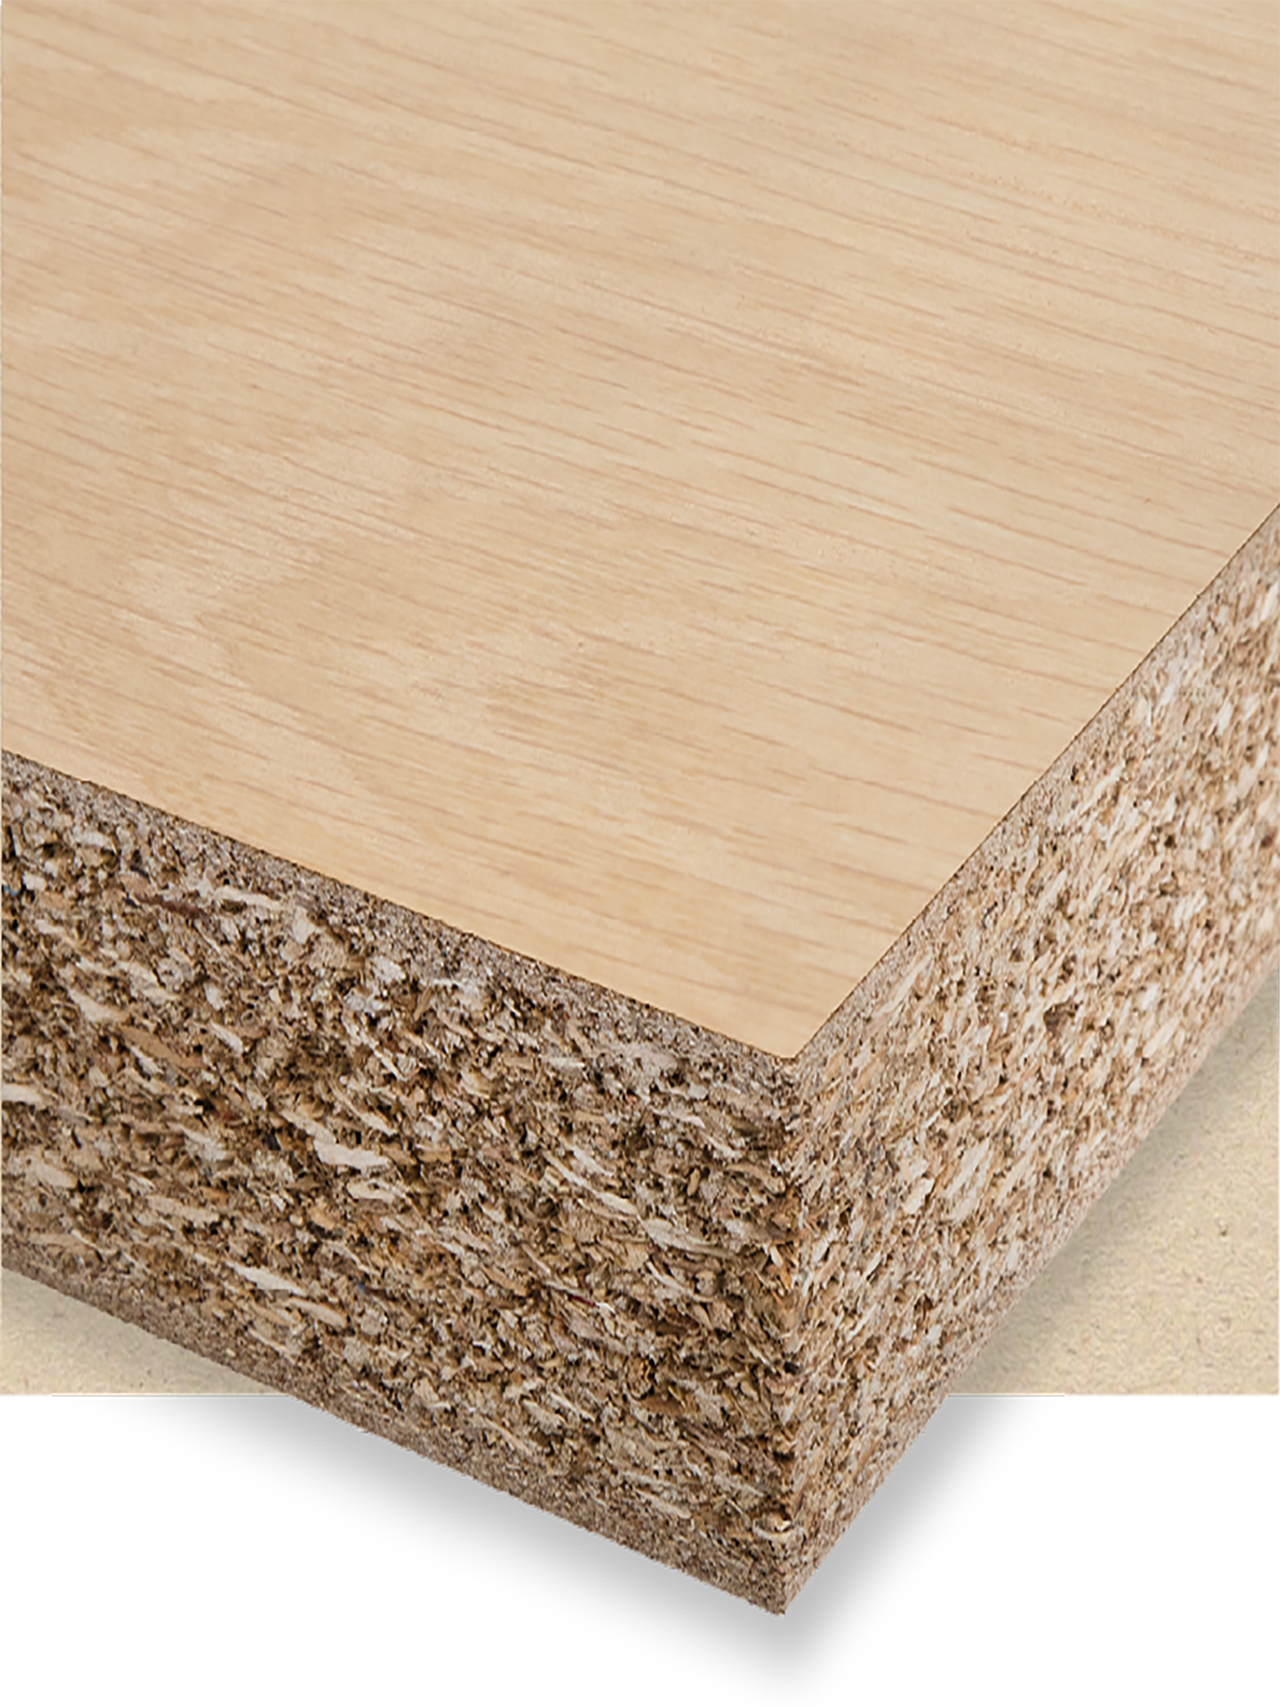 Veneered light weight chipboard E1